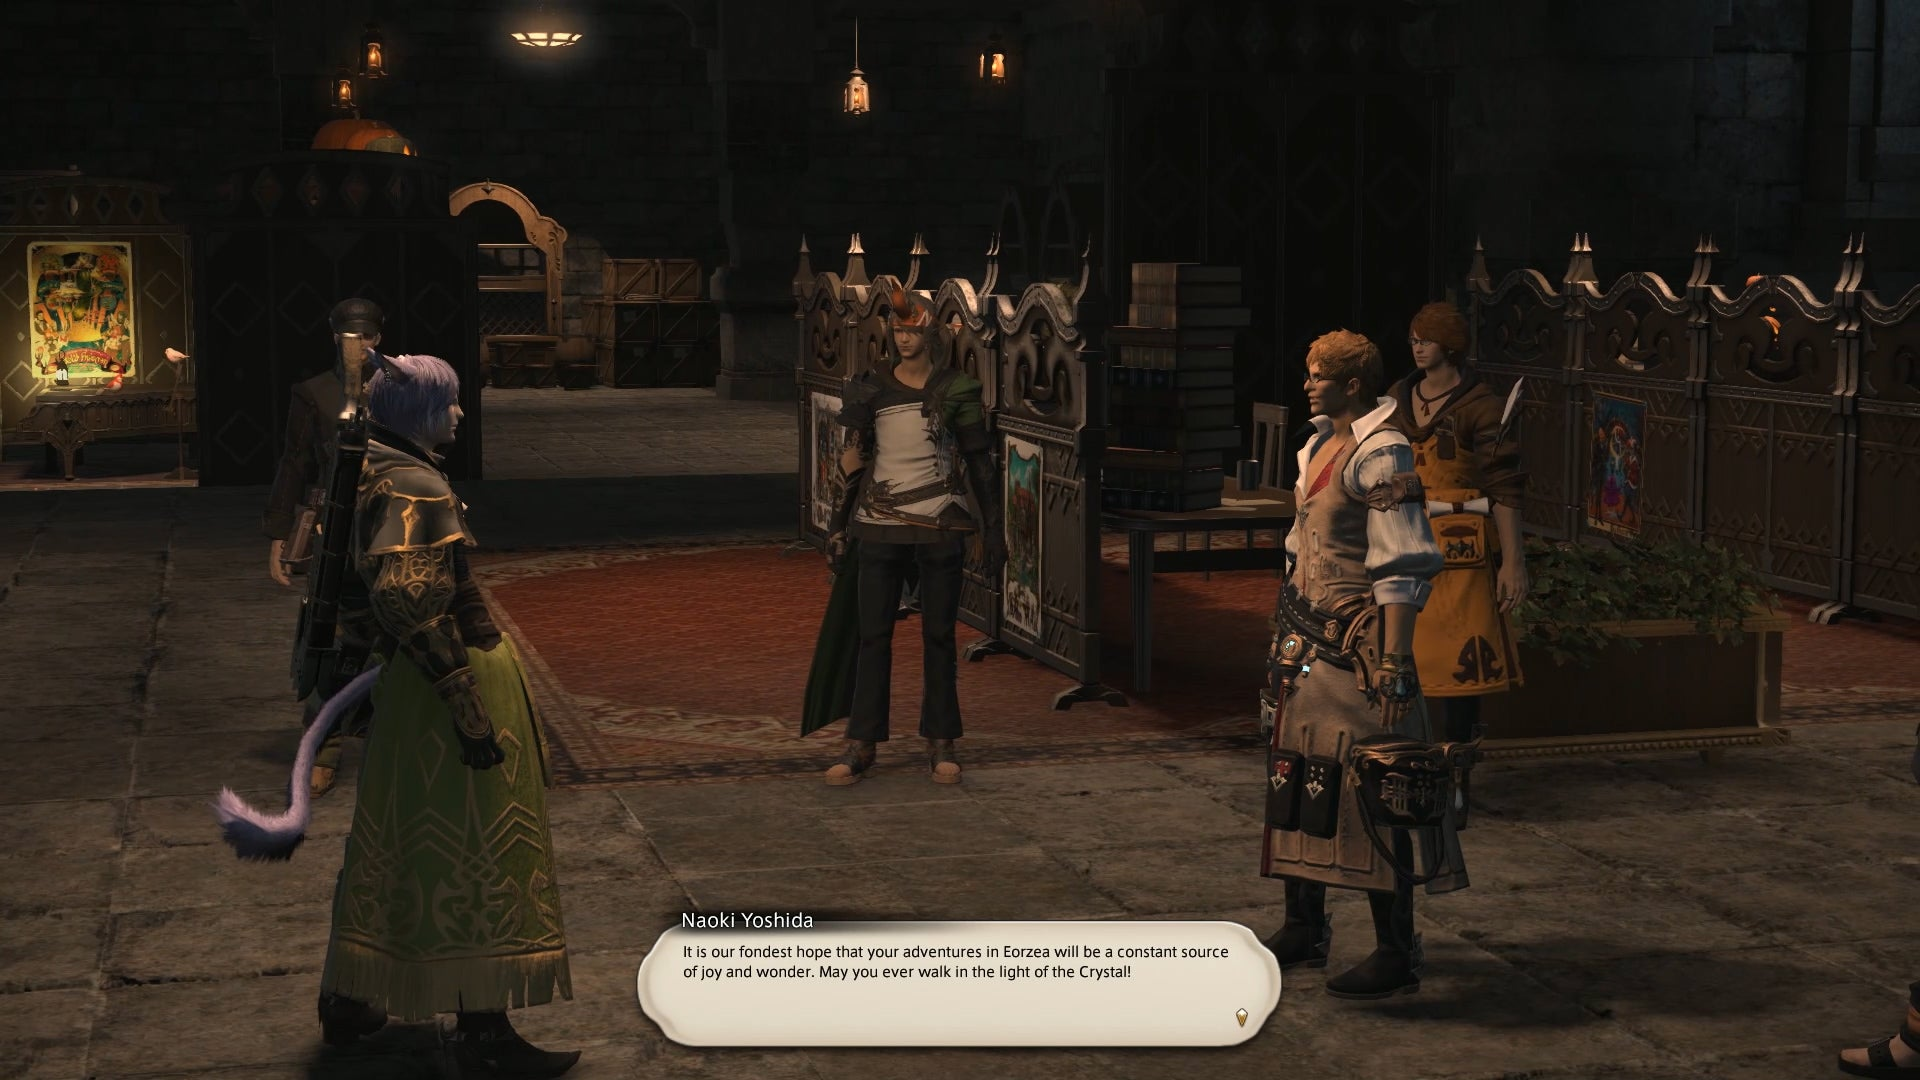 Final Fantasy XIV's Anniversary Takes Players To A Very Special Place